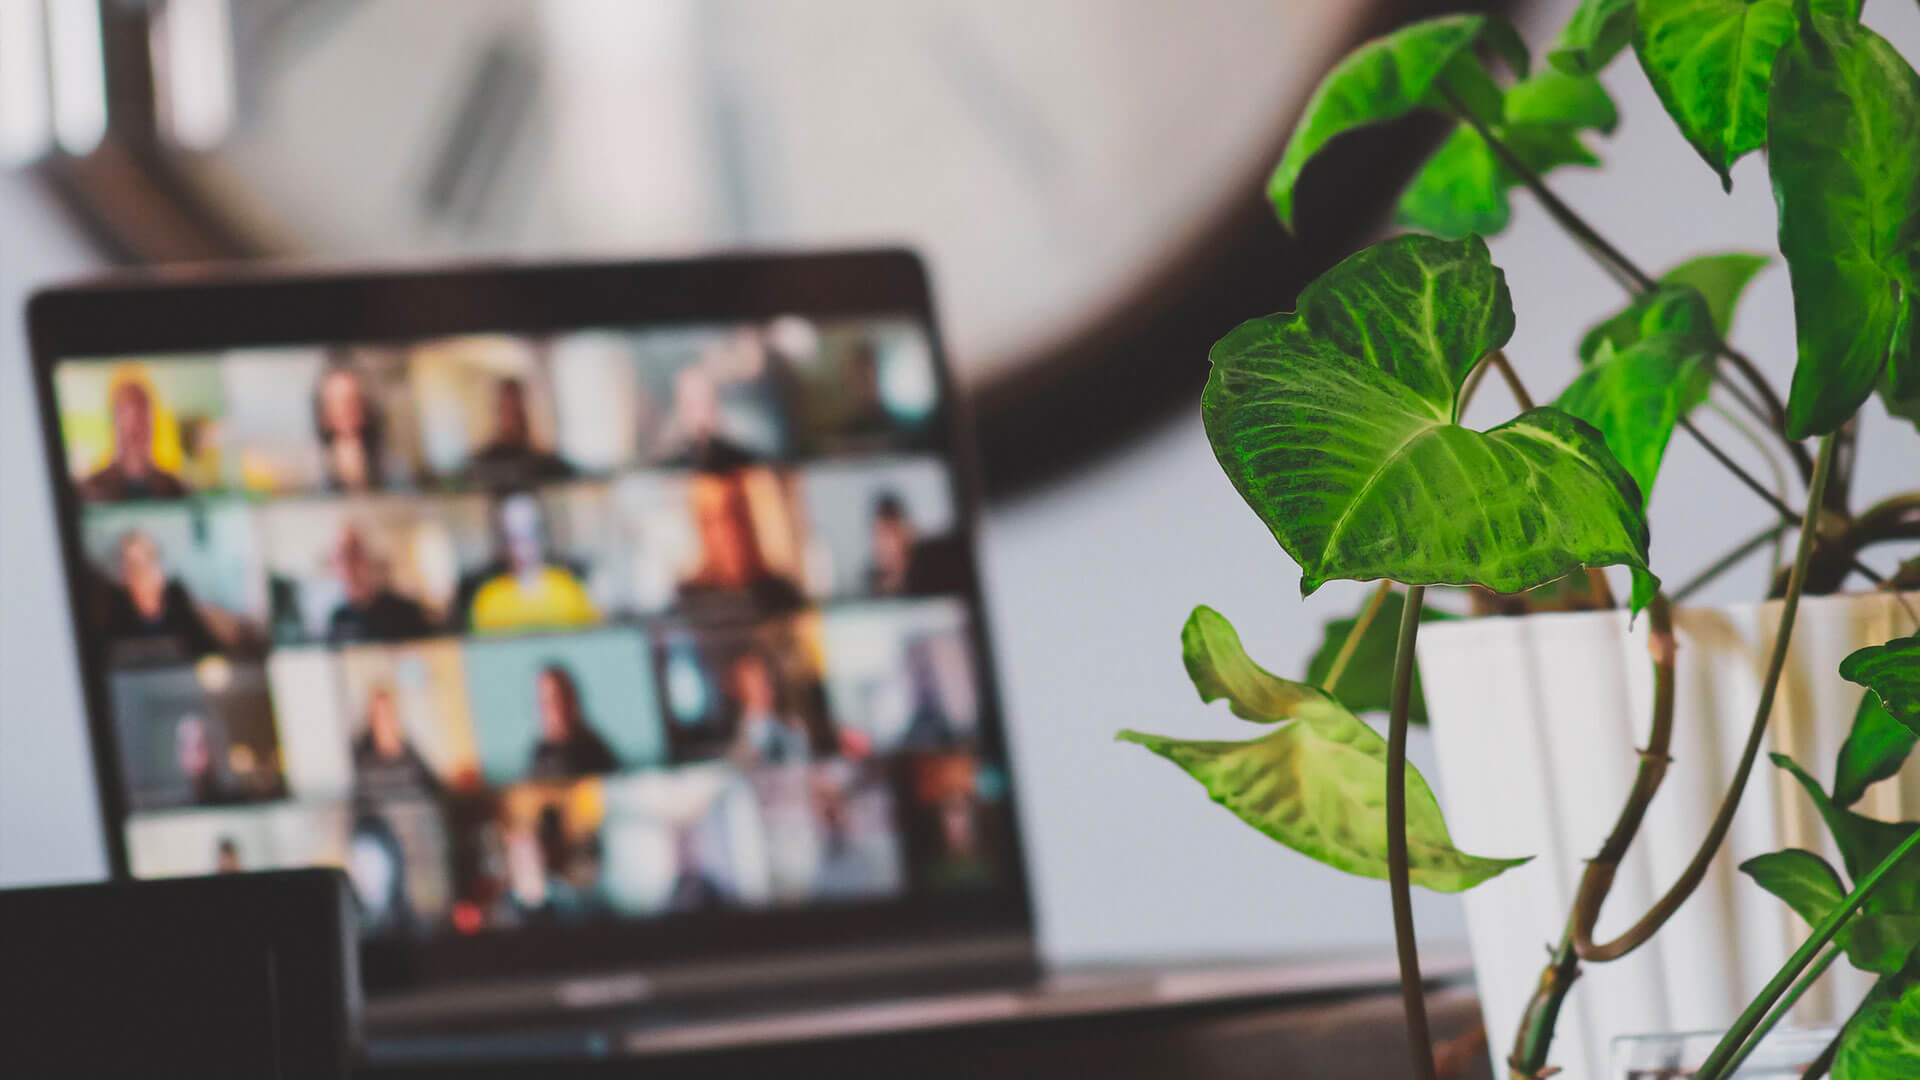 A open laptop in a virtual group chat, placed next to a house plant.